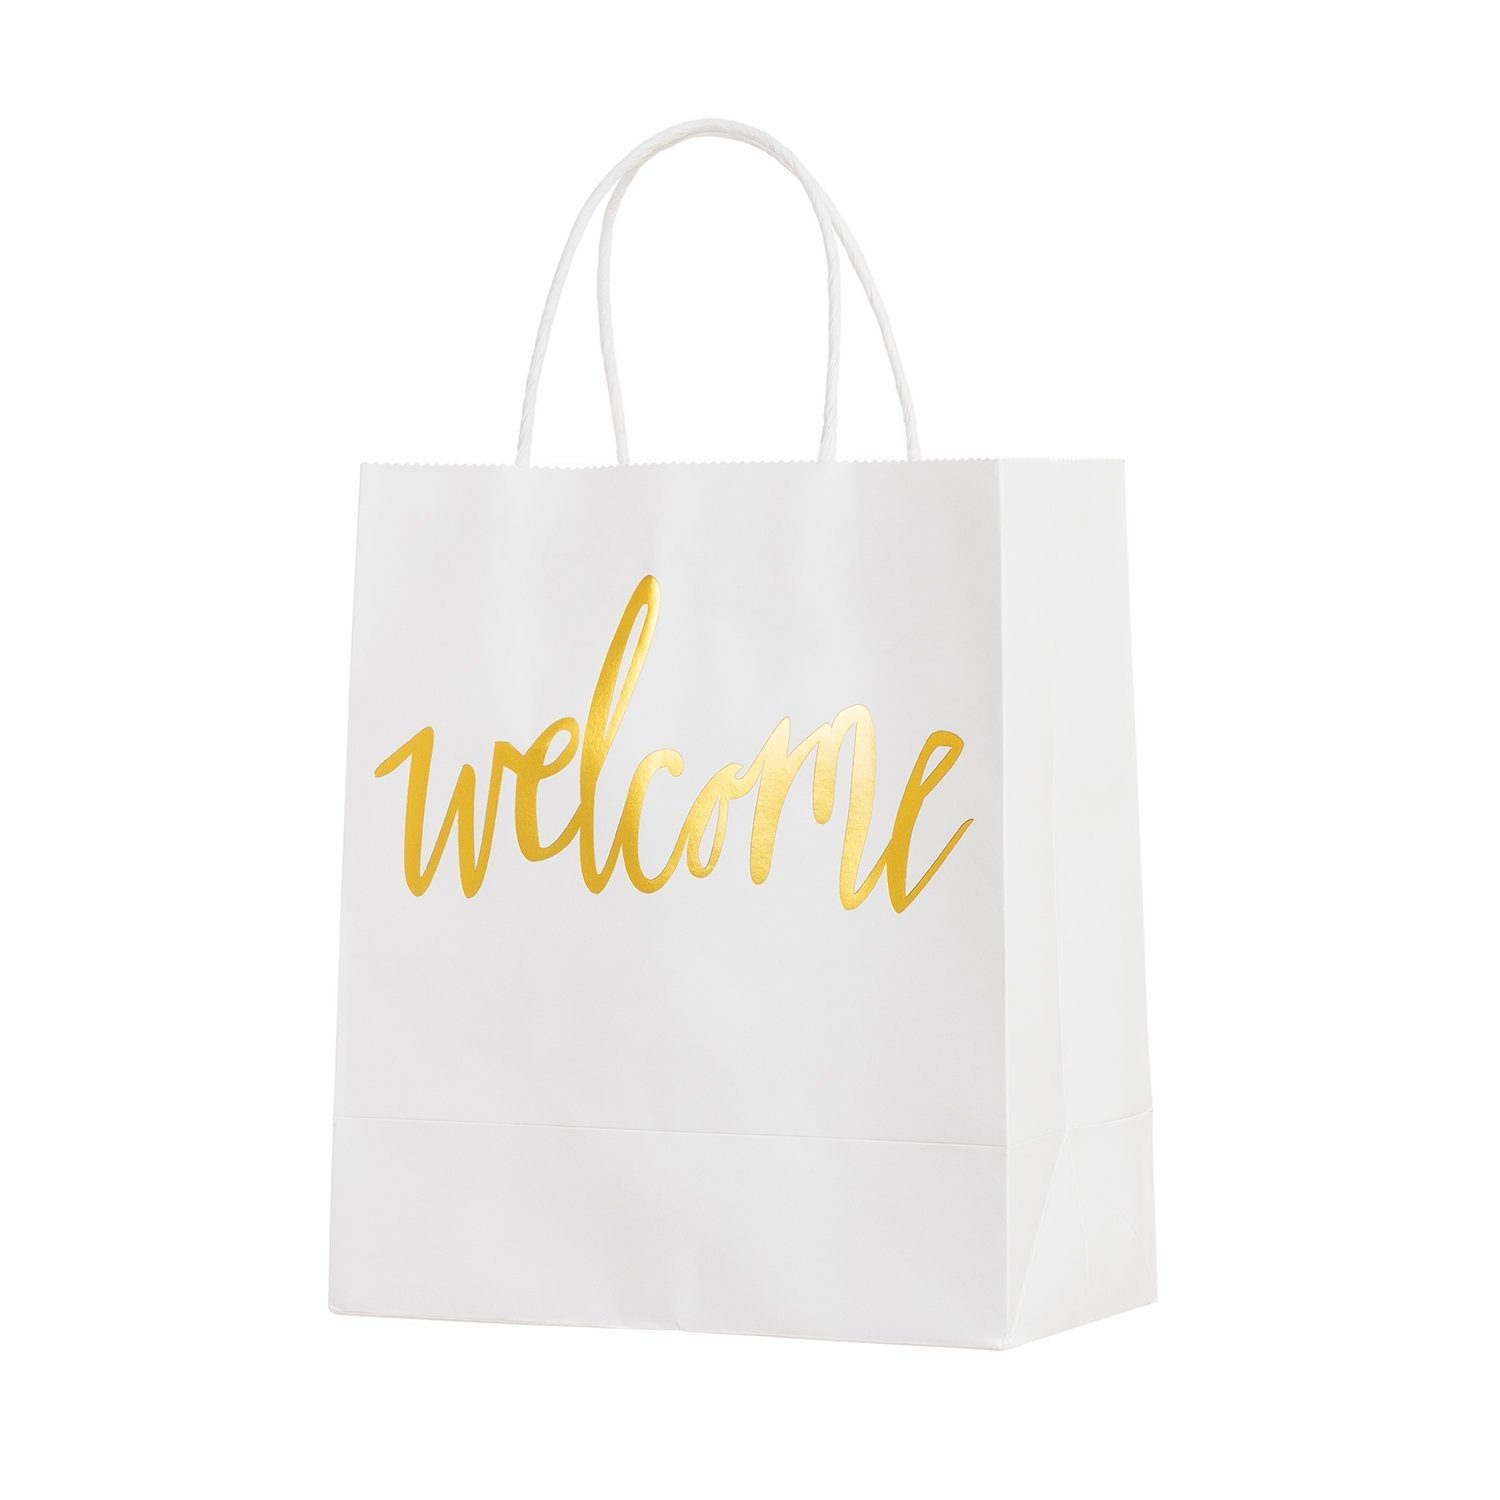 Ling's Moment Set of 25 White Gold Welcome Bags for Wedding Party Gift Bags for Hotel Guests, Weekend Destination Wedding Favors